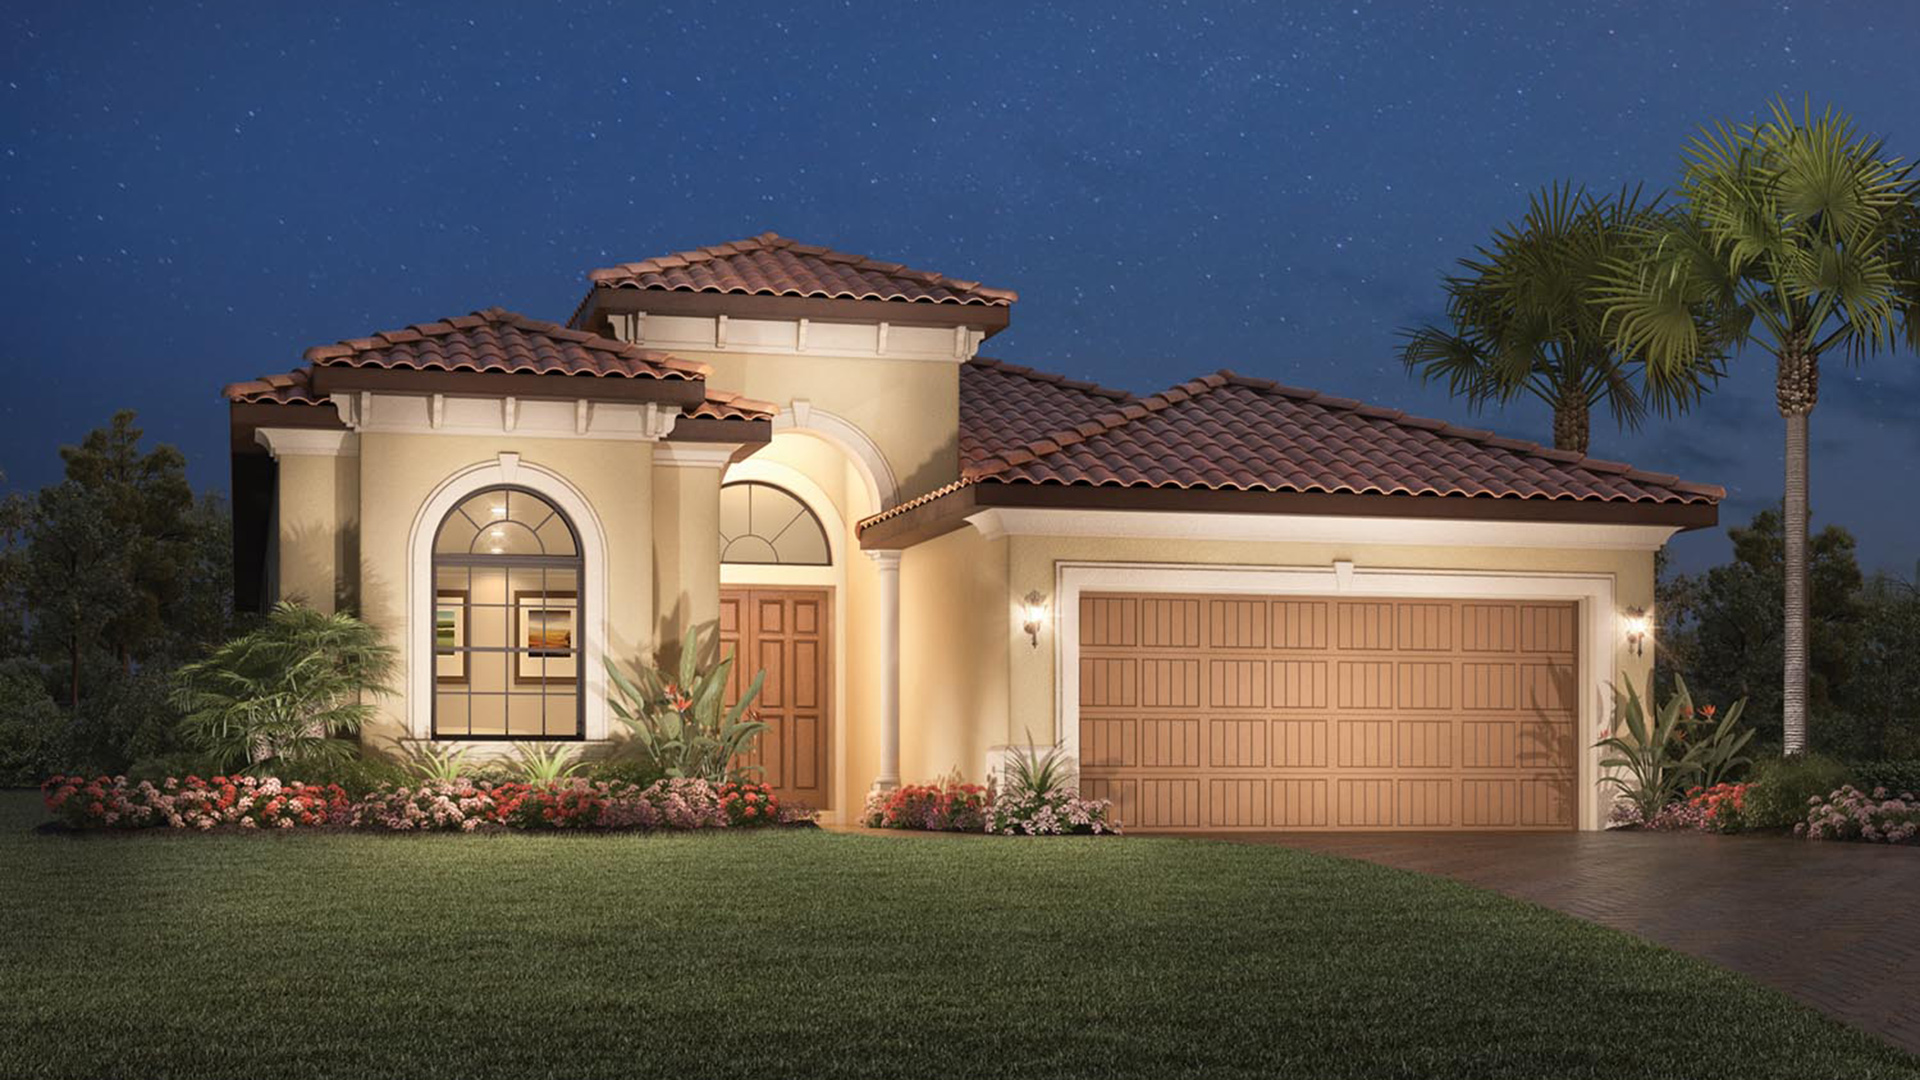 Palazzo at naples the el paso home design for El paso houses for sale